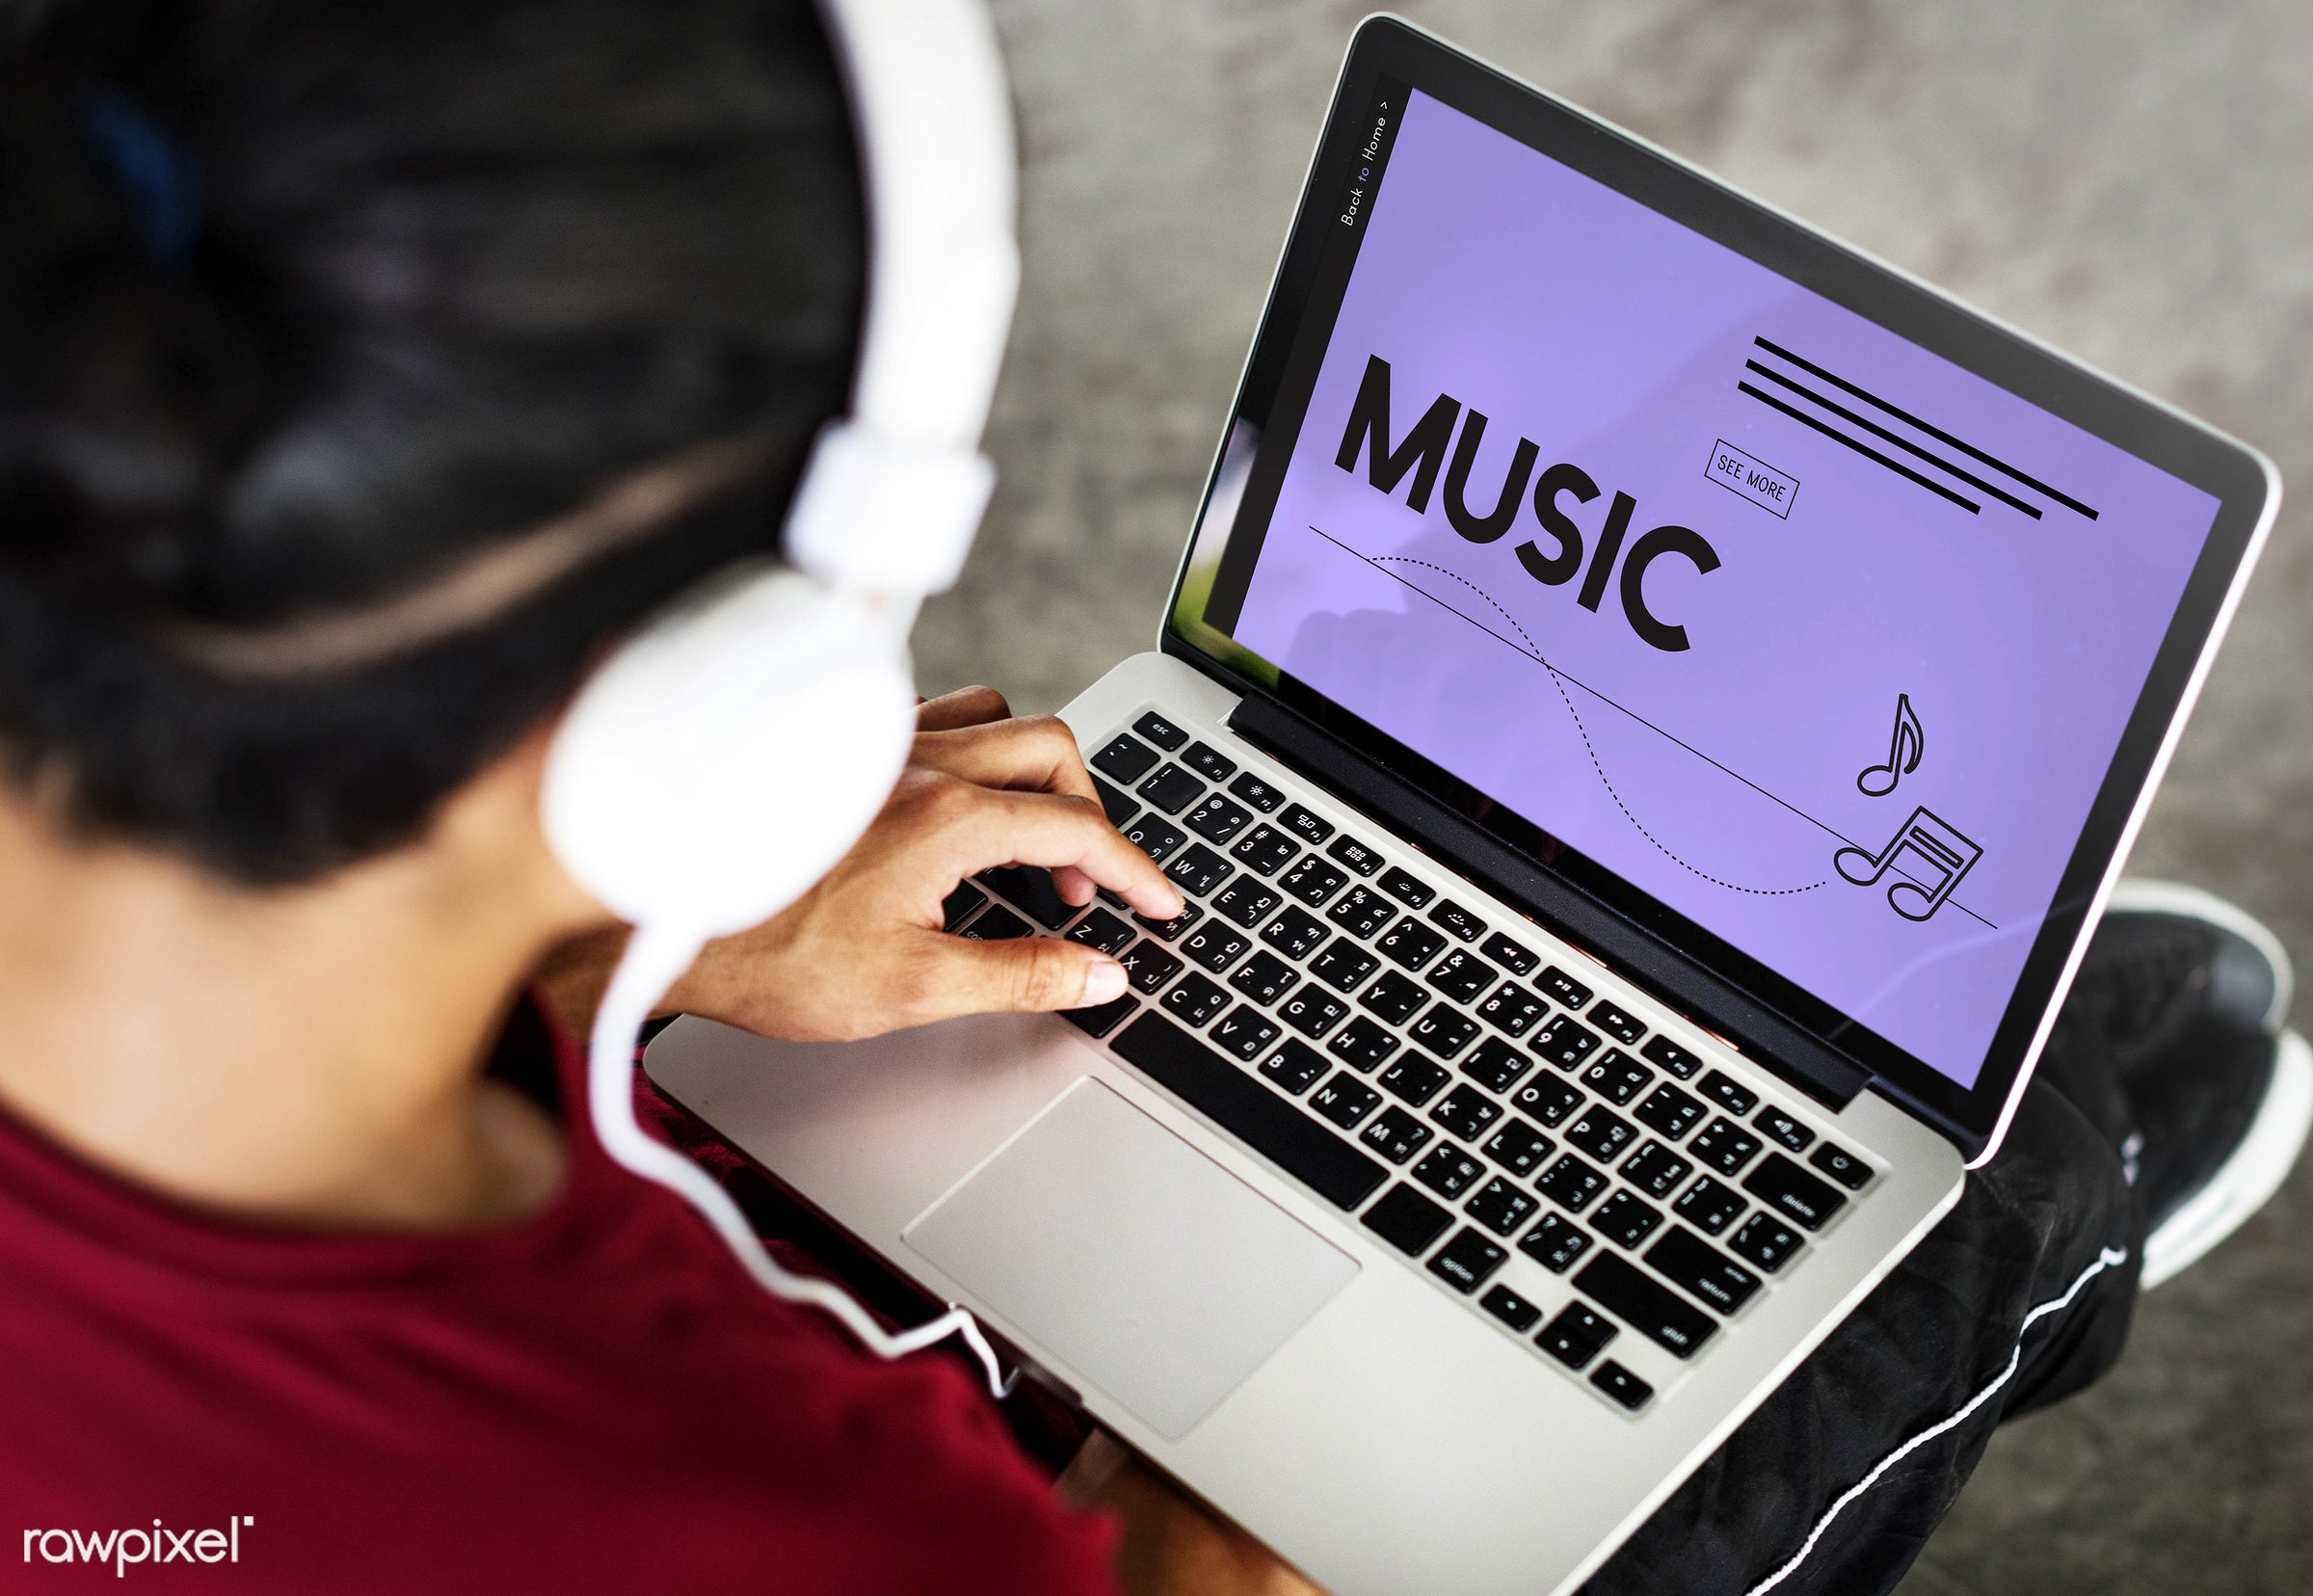 Online music - play, listen, audio, broadcast, browse, browsing, connect, connection, digital media, discover, enjoy,...